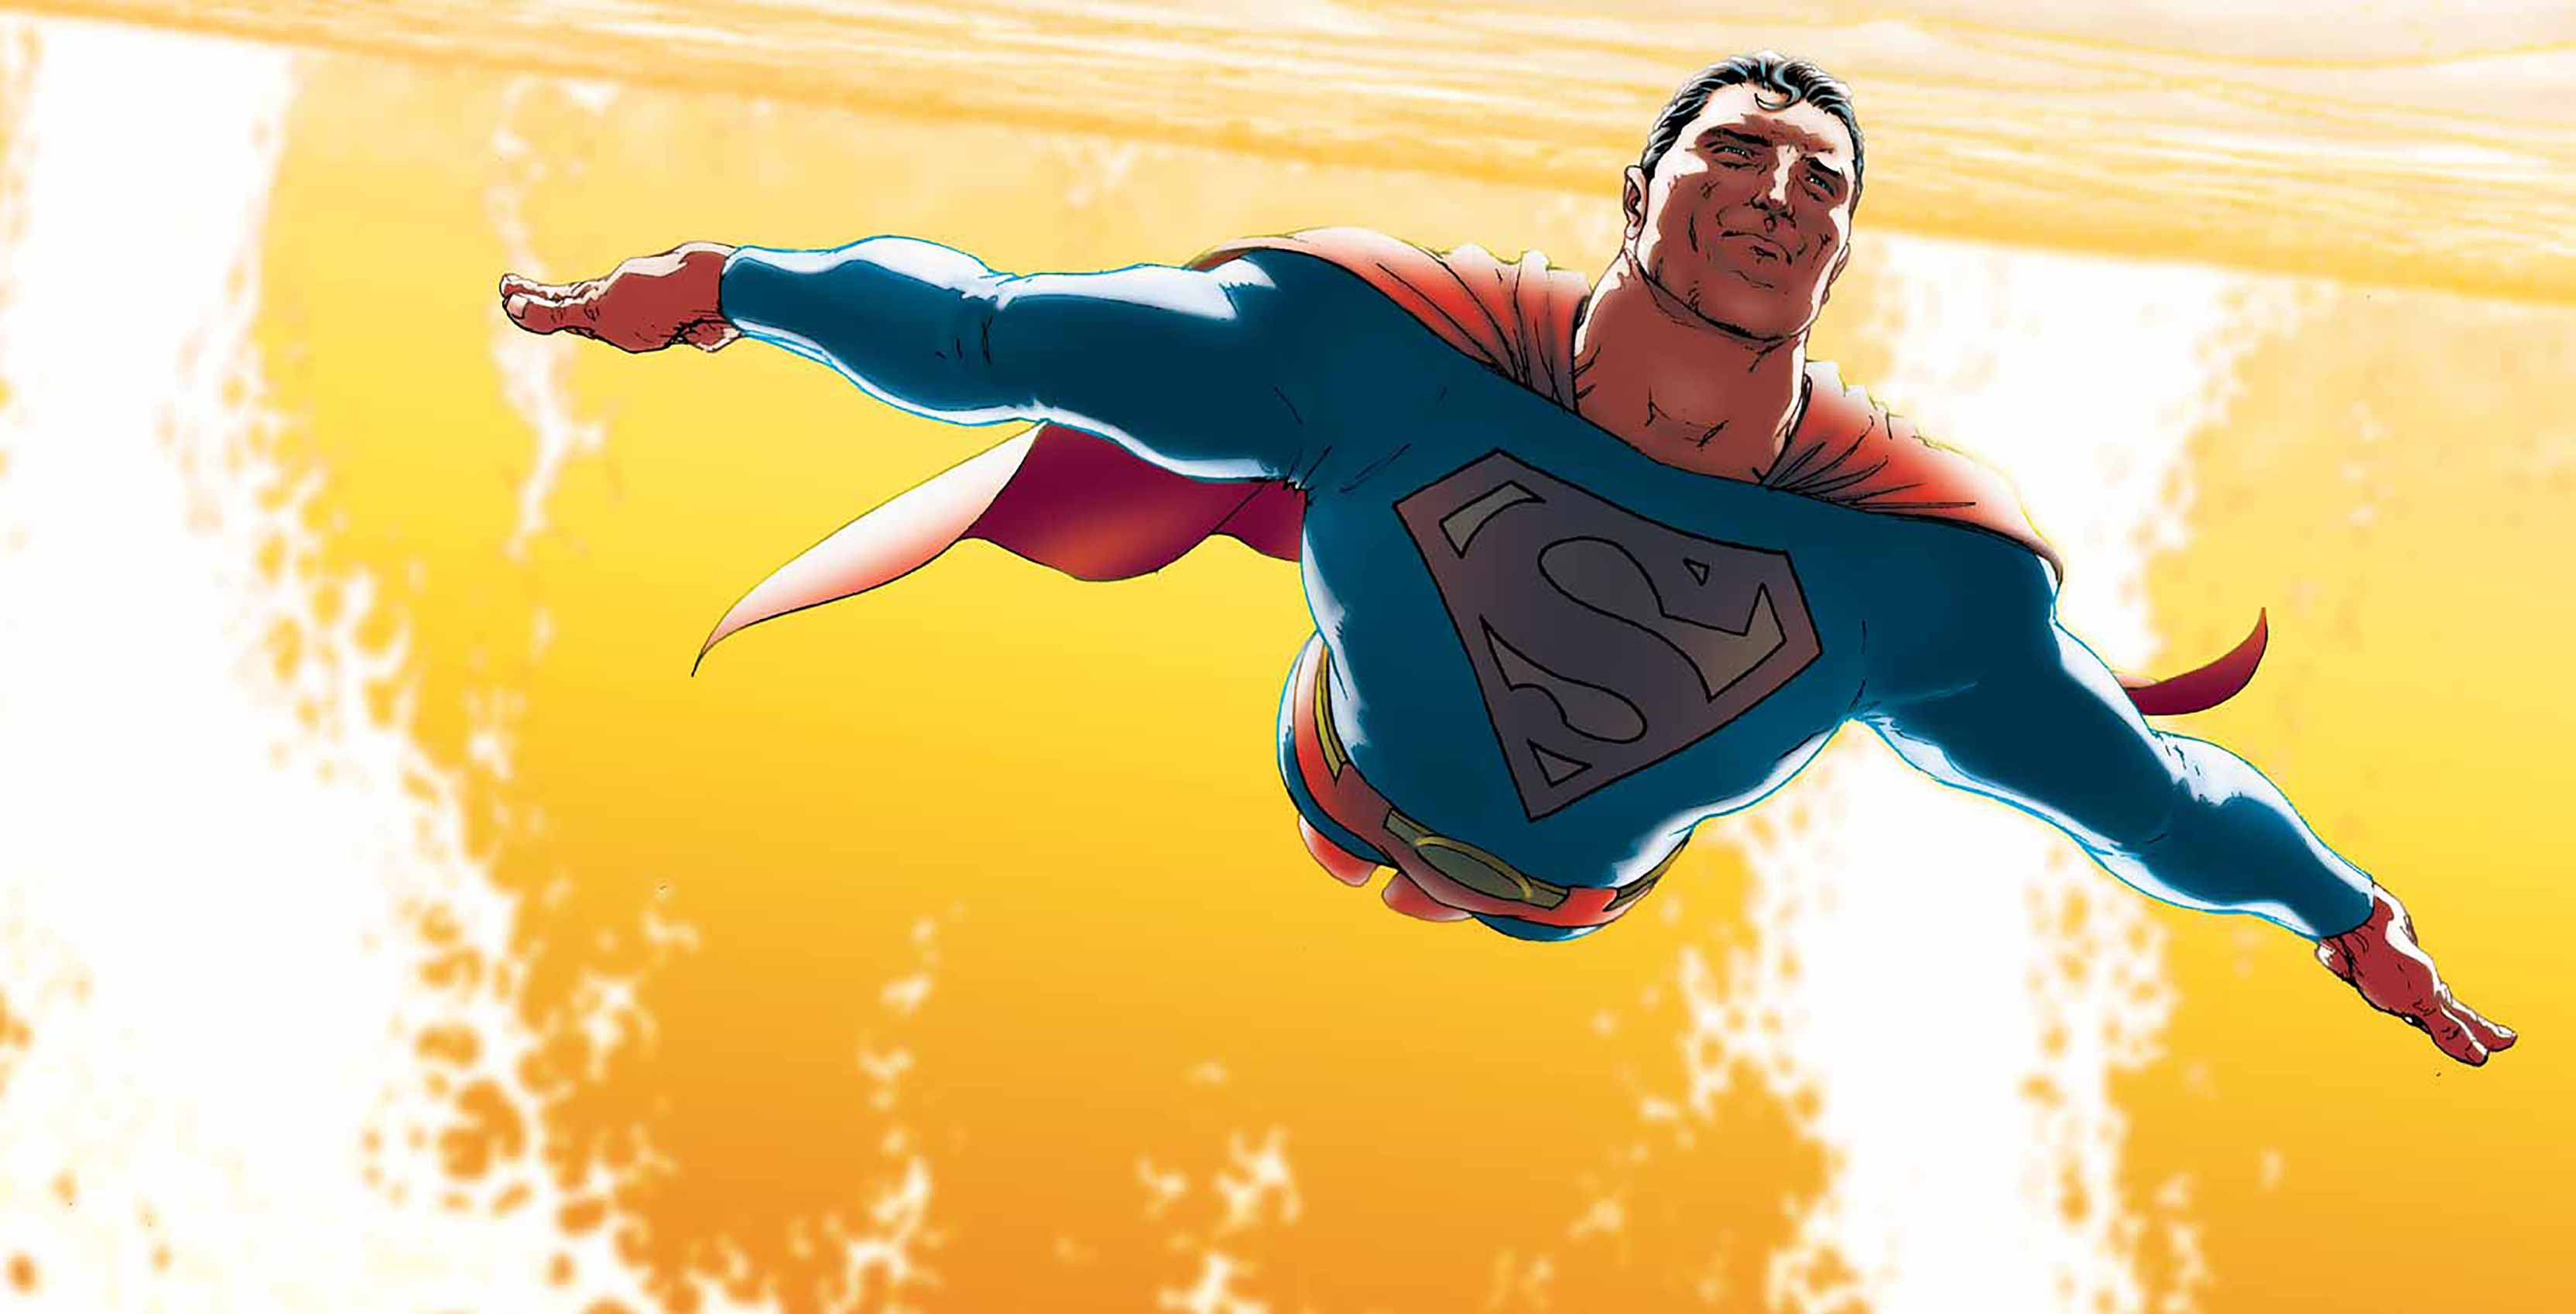 Snapchat celebrates 80 years of Superman with new superpower filters